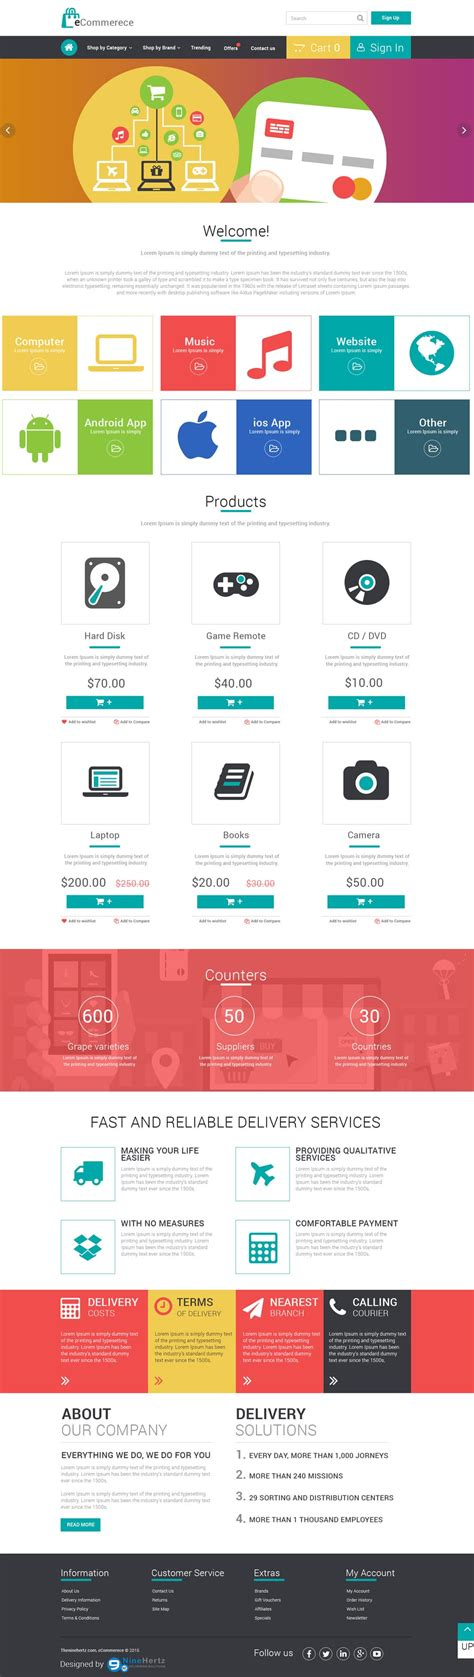 Free Ecommerce Web Templates Psd 187 Css Author Ecommerce P L Template